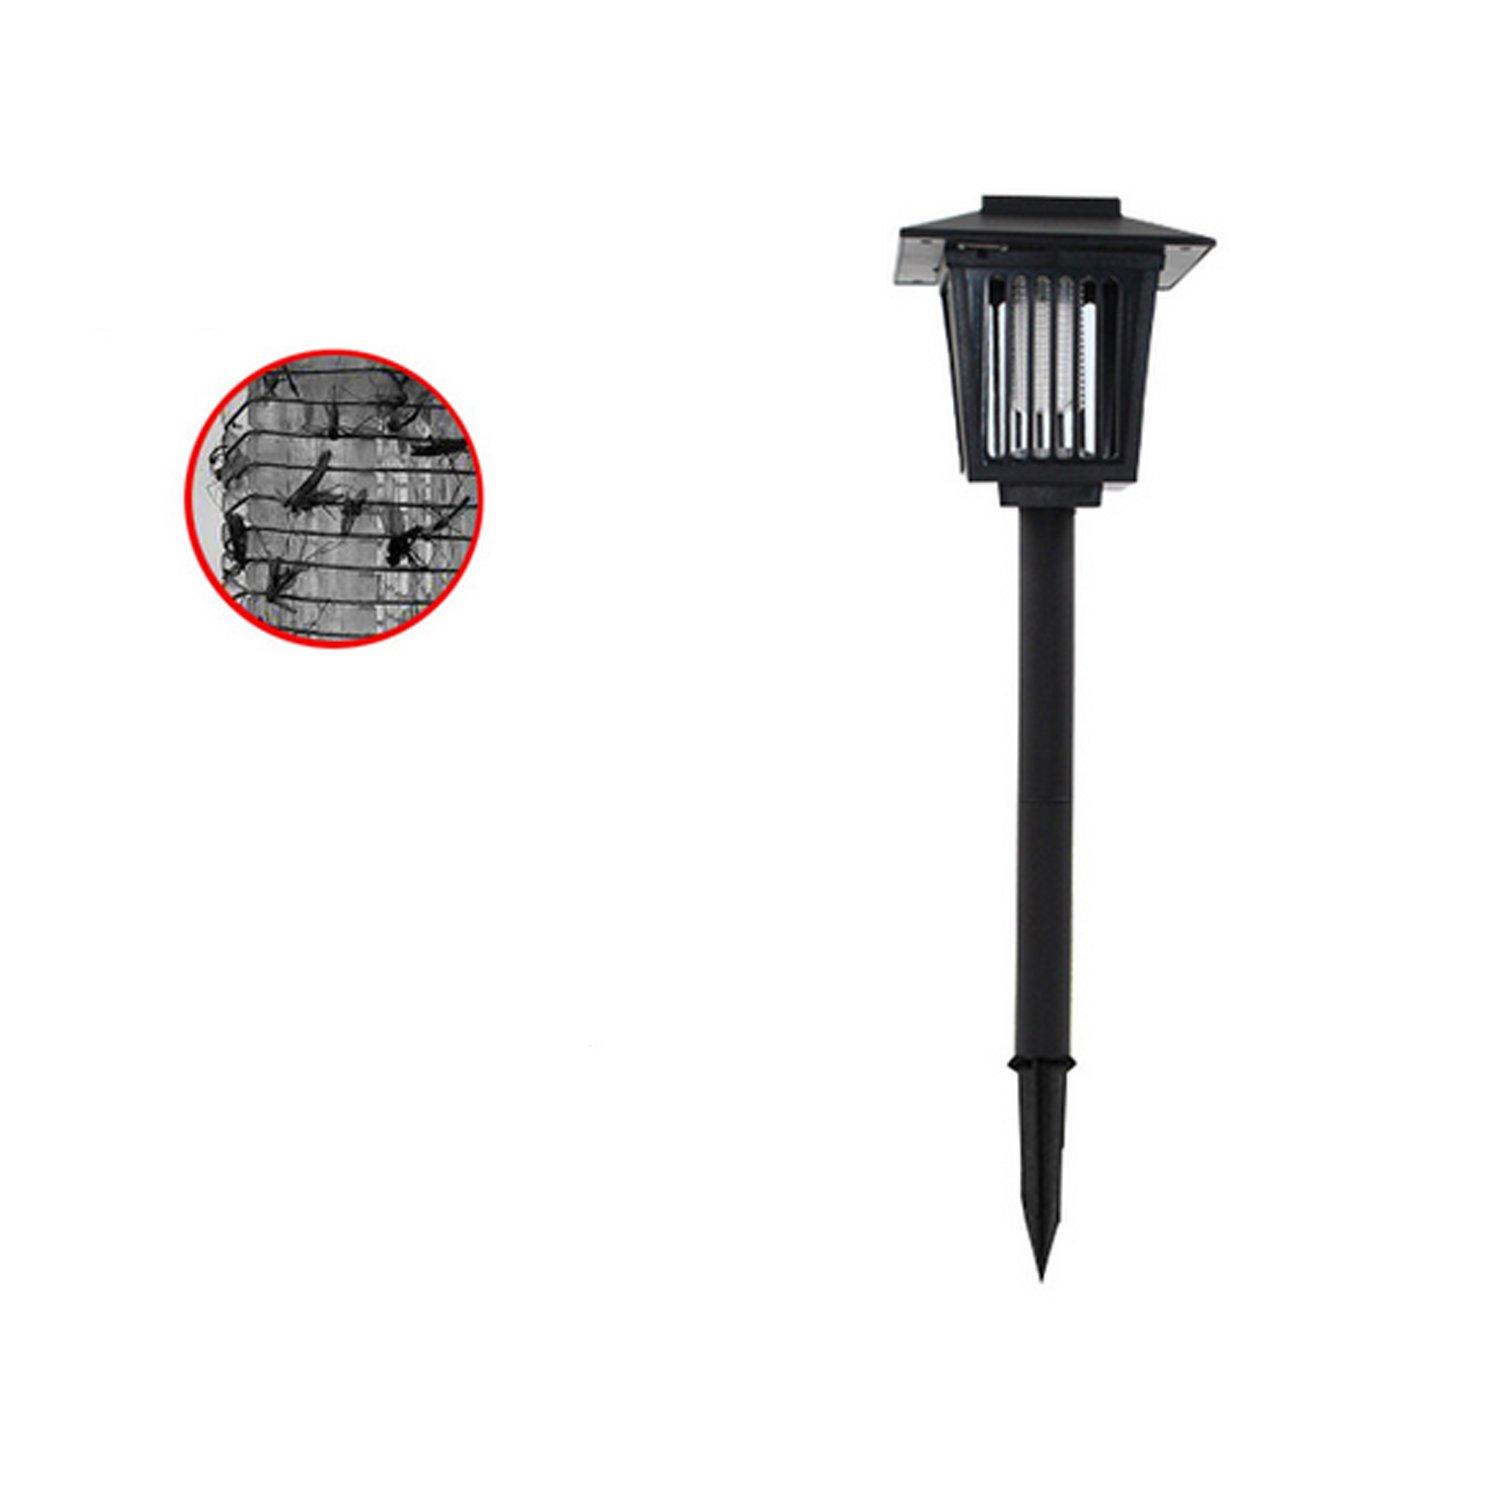 Solar Powered Bug Zapper Light, Solar Mosquito Killer Insect Killer Indoor Outdoor Fly Pest Trap Lamp Portable Garden Lawn Light For Garden, Patio, Outdoor Ground Residential, Commercial and Industri by THE SAFETY ZONEY (Image #2)